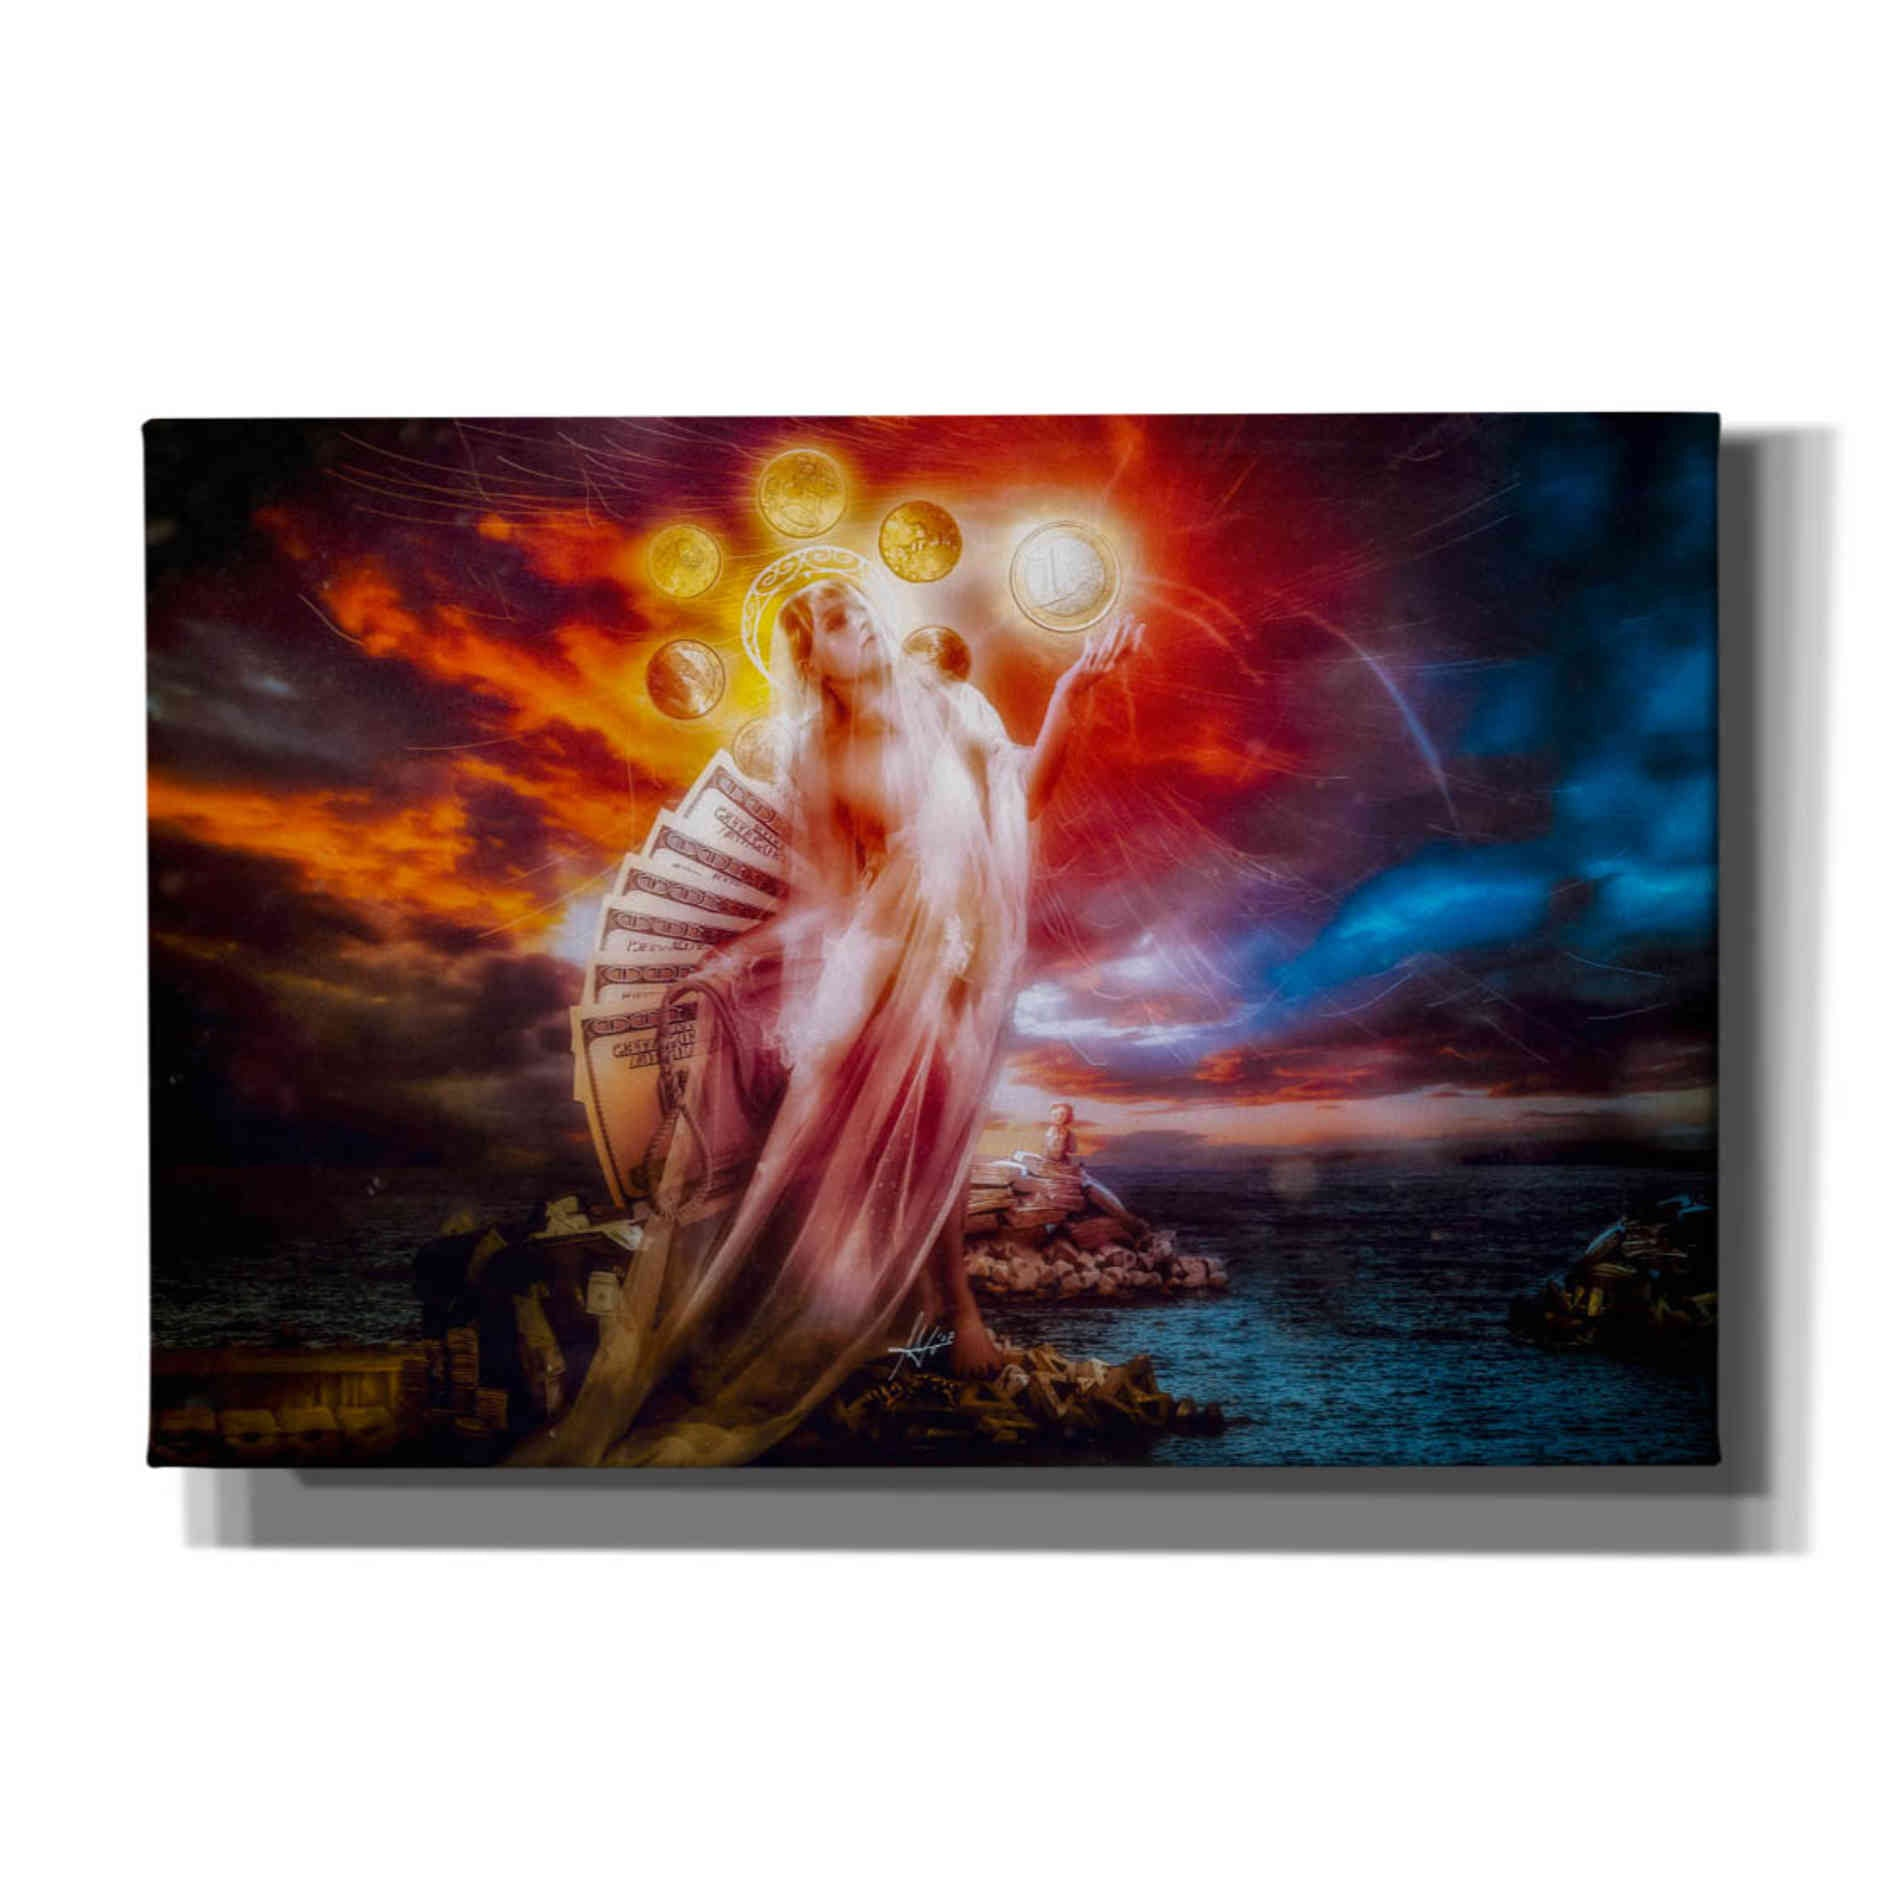 Cortesi Home 'St. Mary of Coins' by Mario Sanchez Nevado, Canvas Wall Art,Size A Landscape